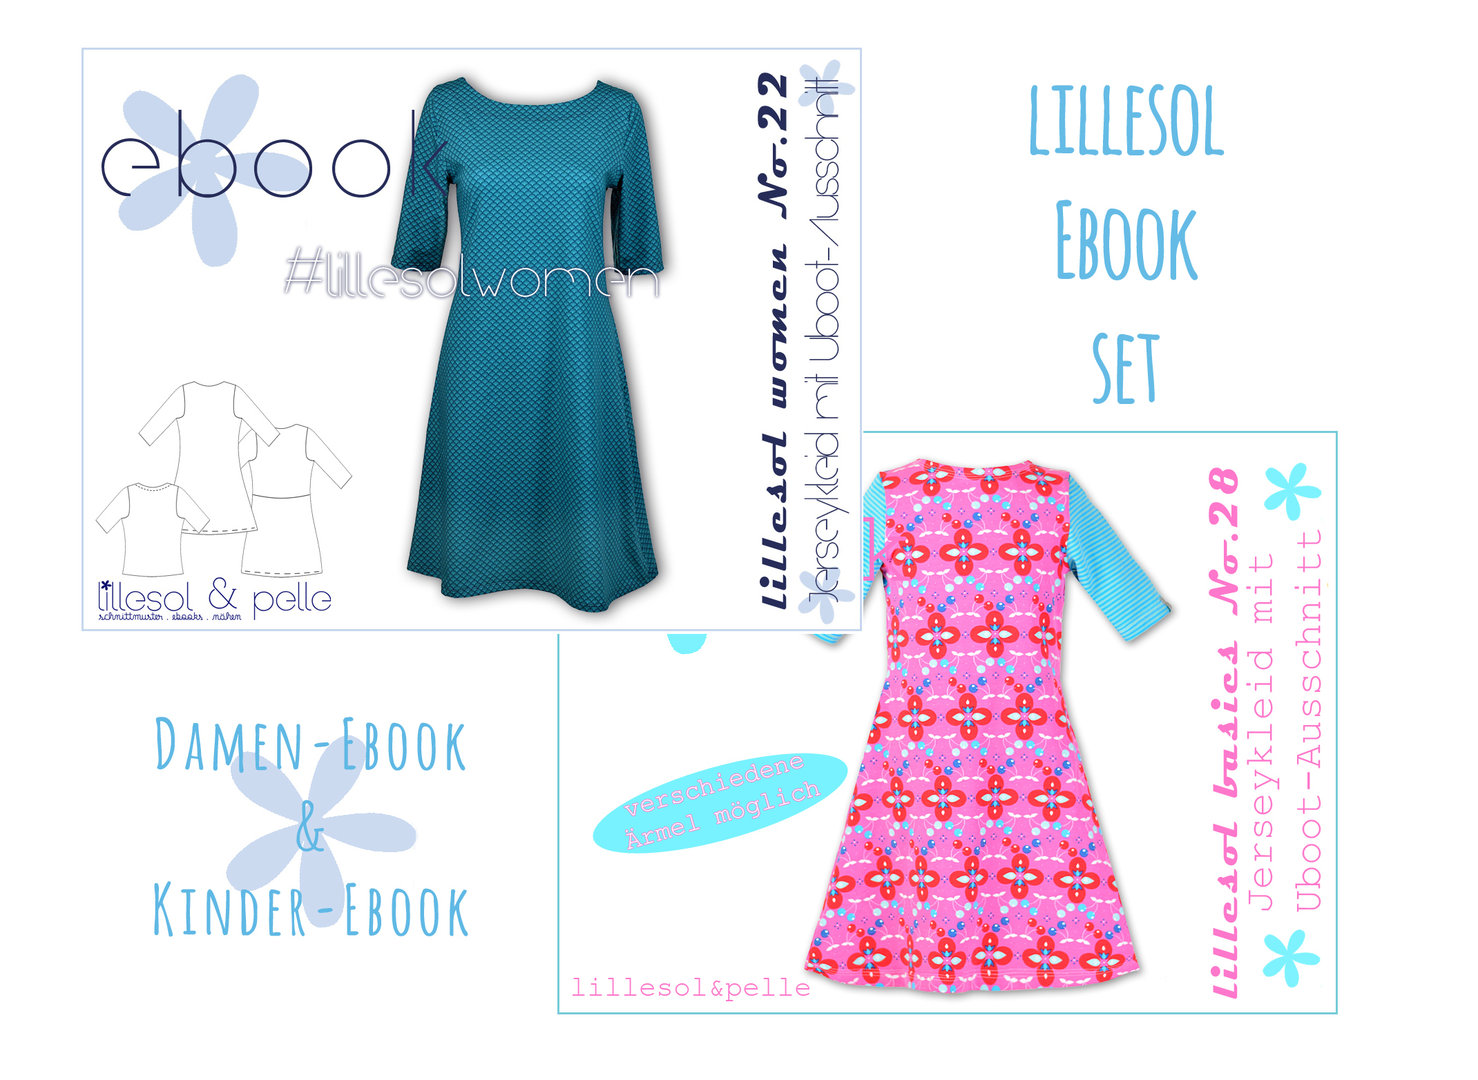 lillesol ebook set basics No.28 und women No.22